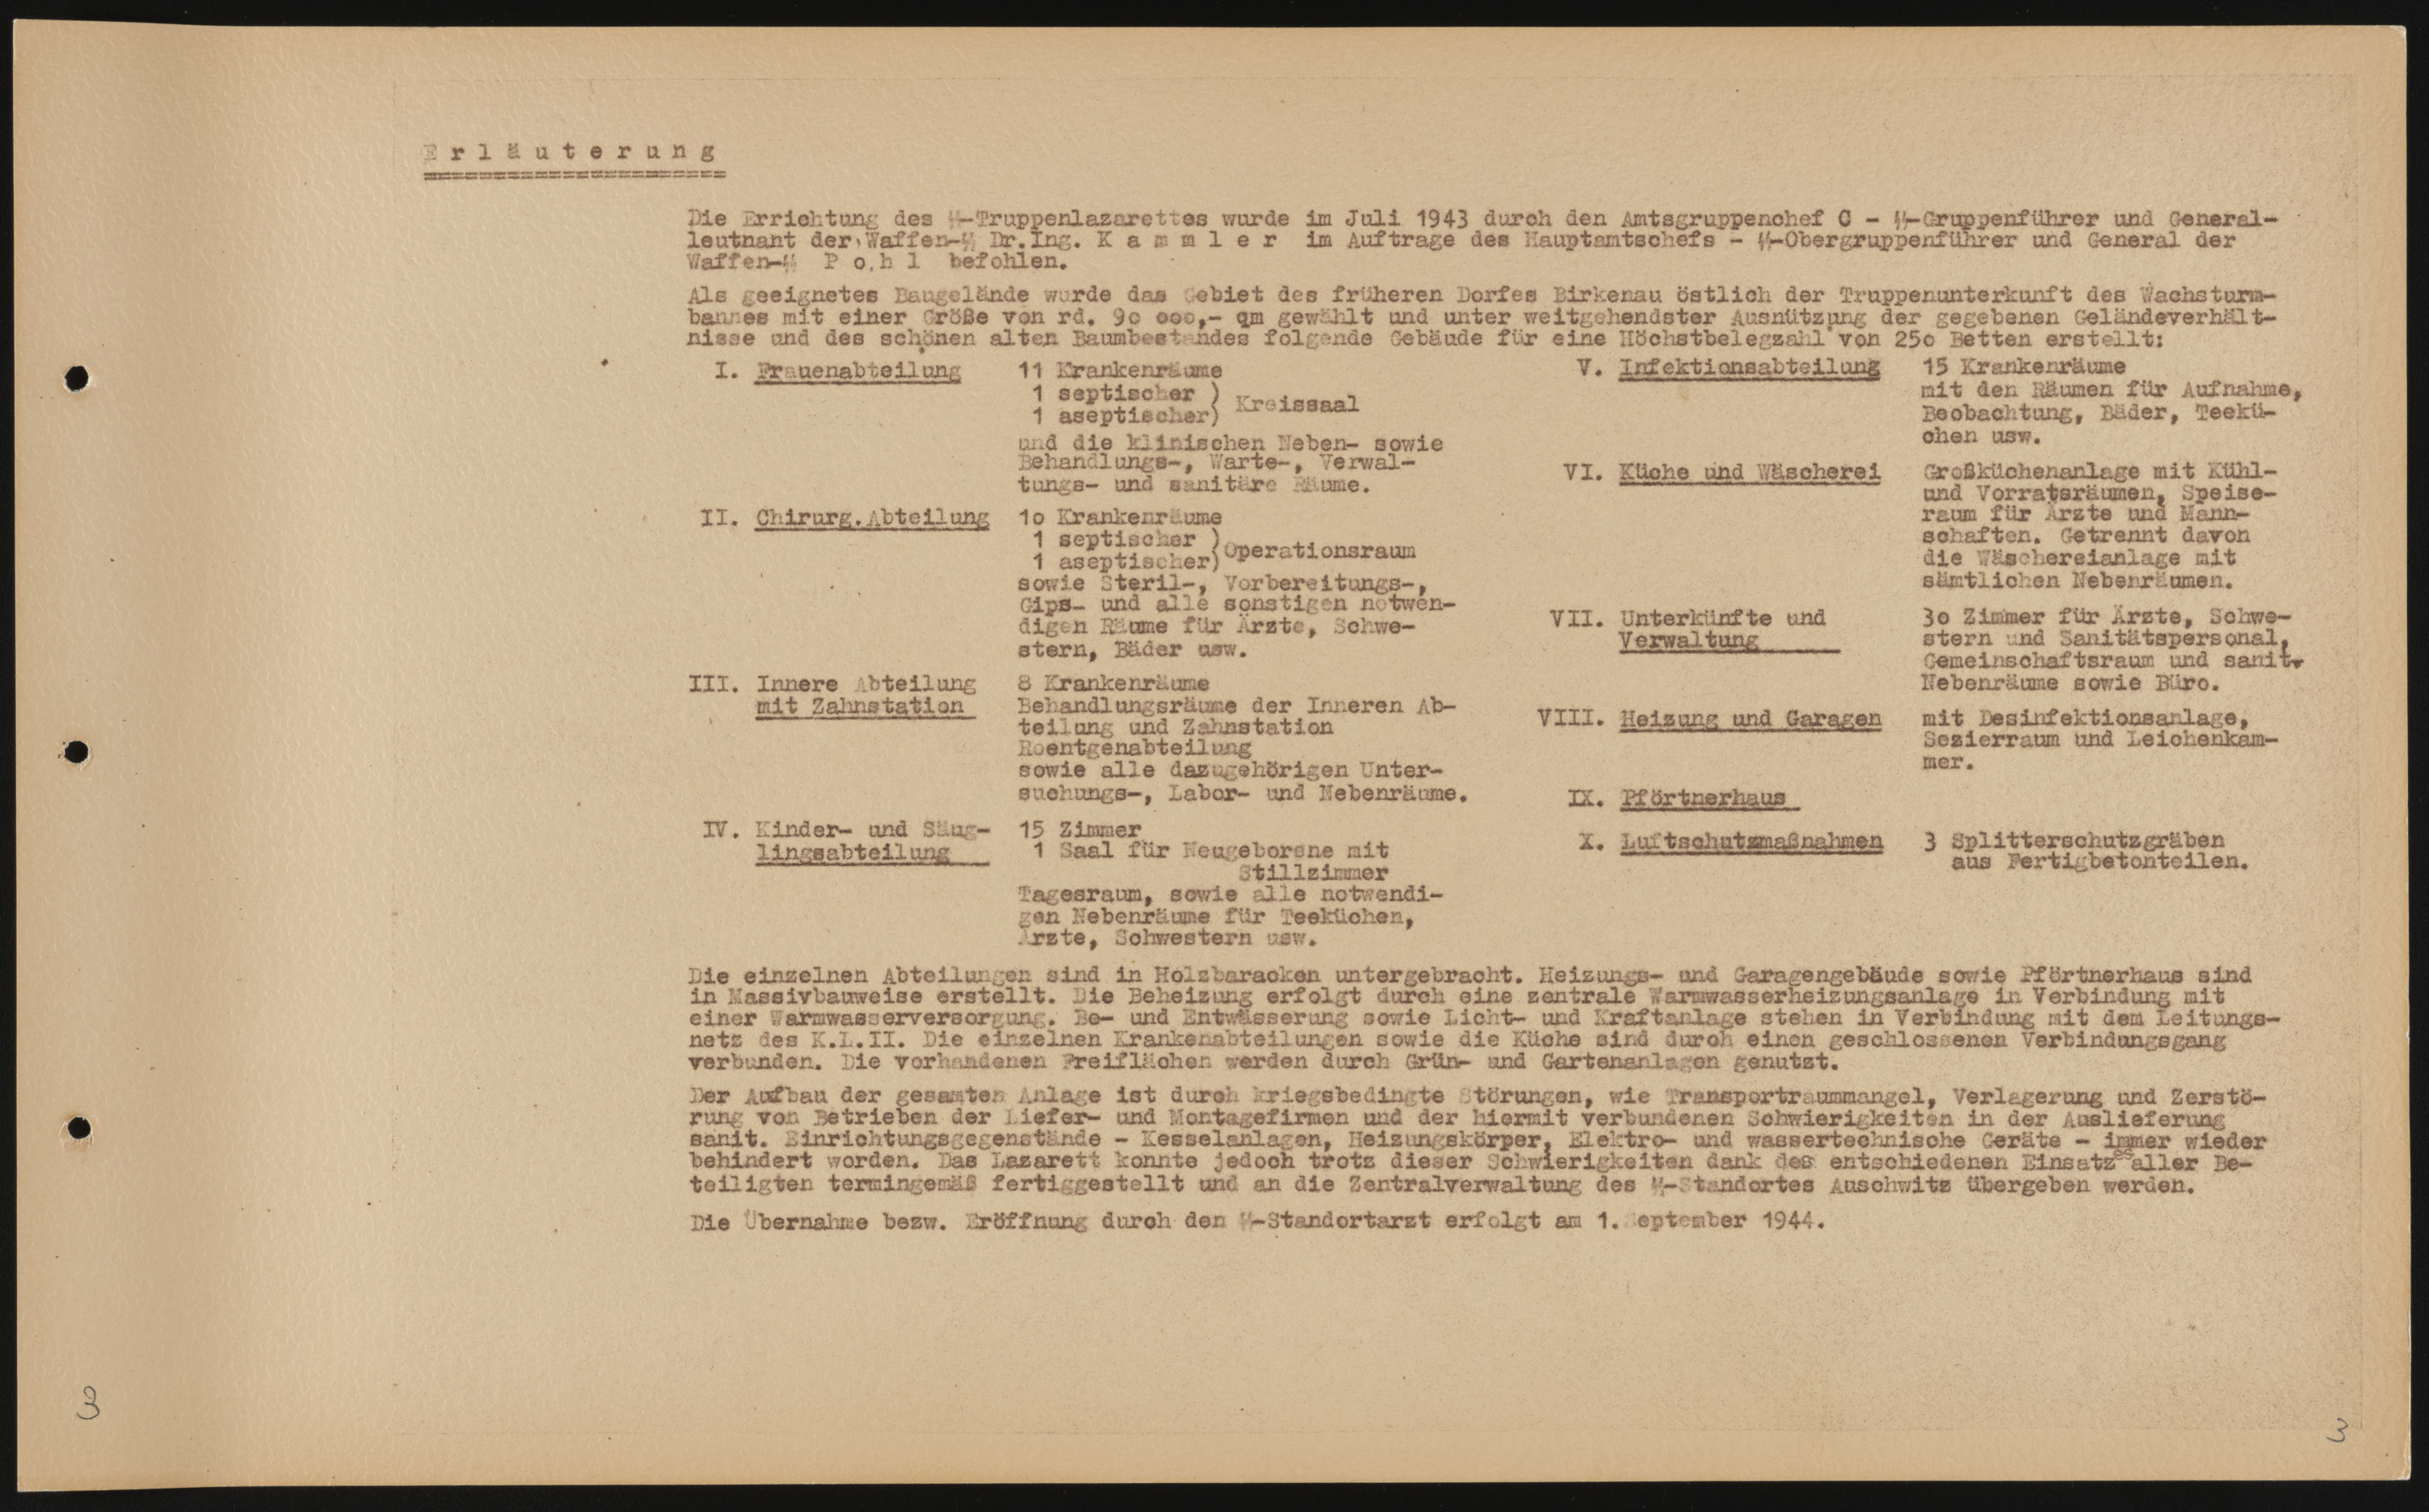 Content page for a photo album documenting the creation of the SS Truppenlazarett, the SS troop hospital in Auschwitz.